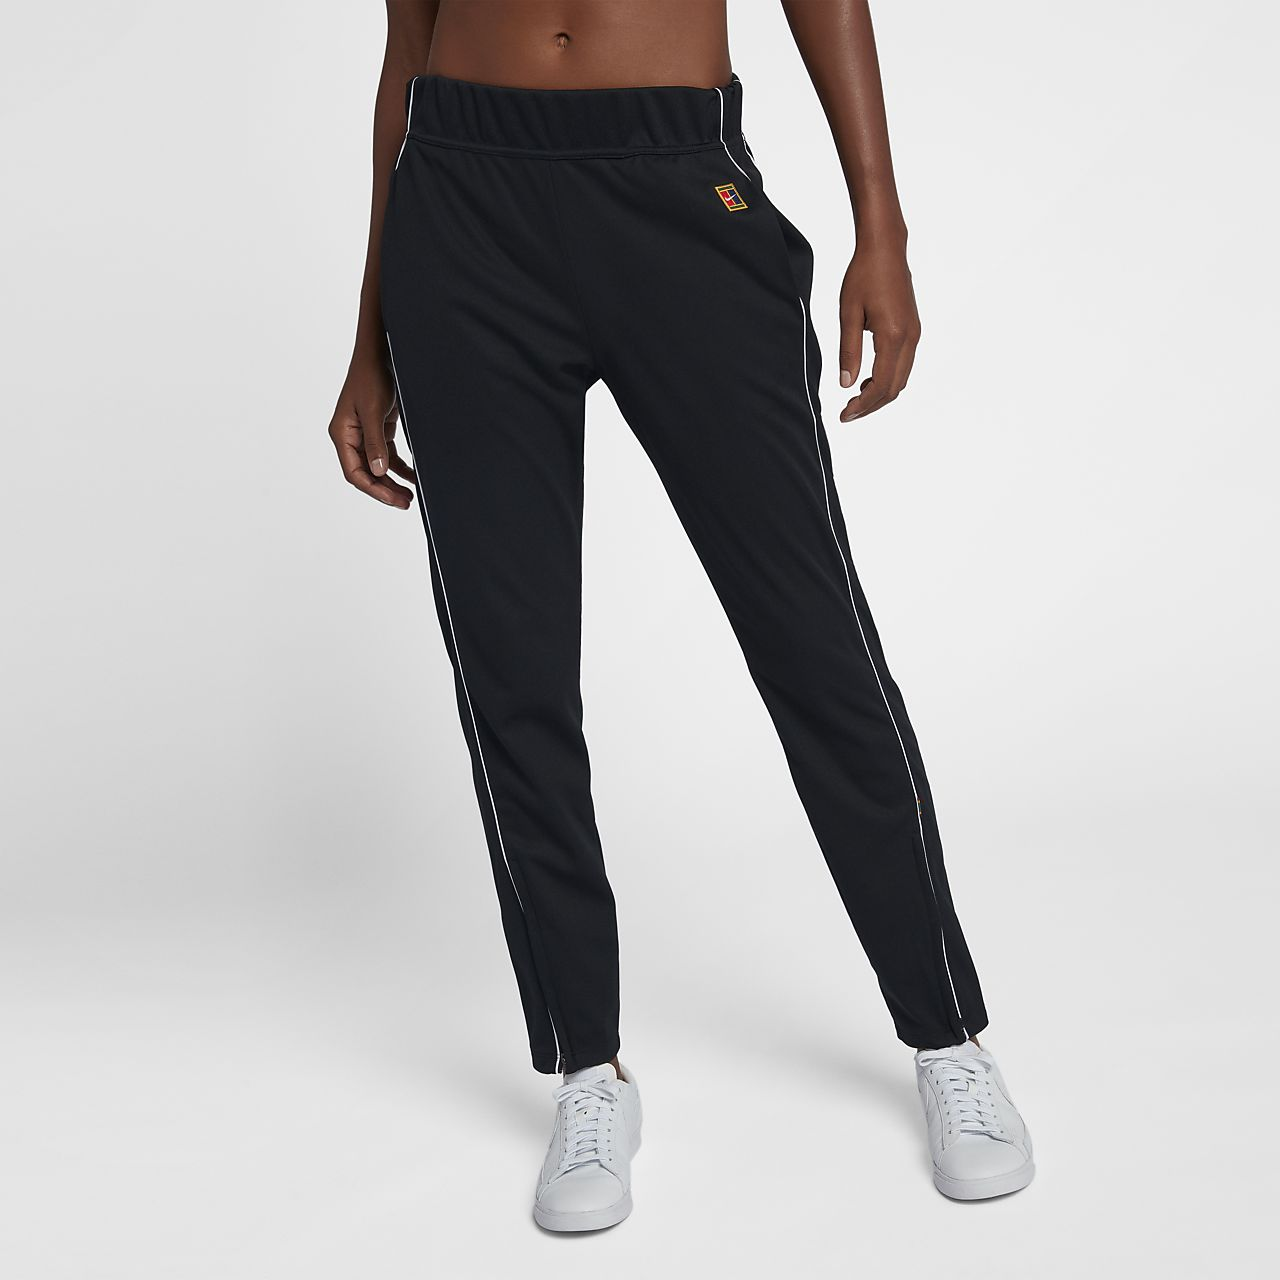 NikeCourt Women's Tennis Trousers